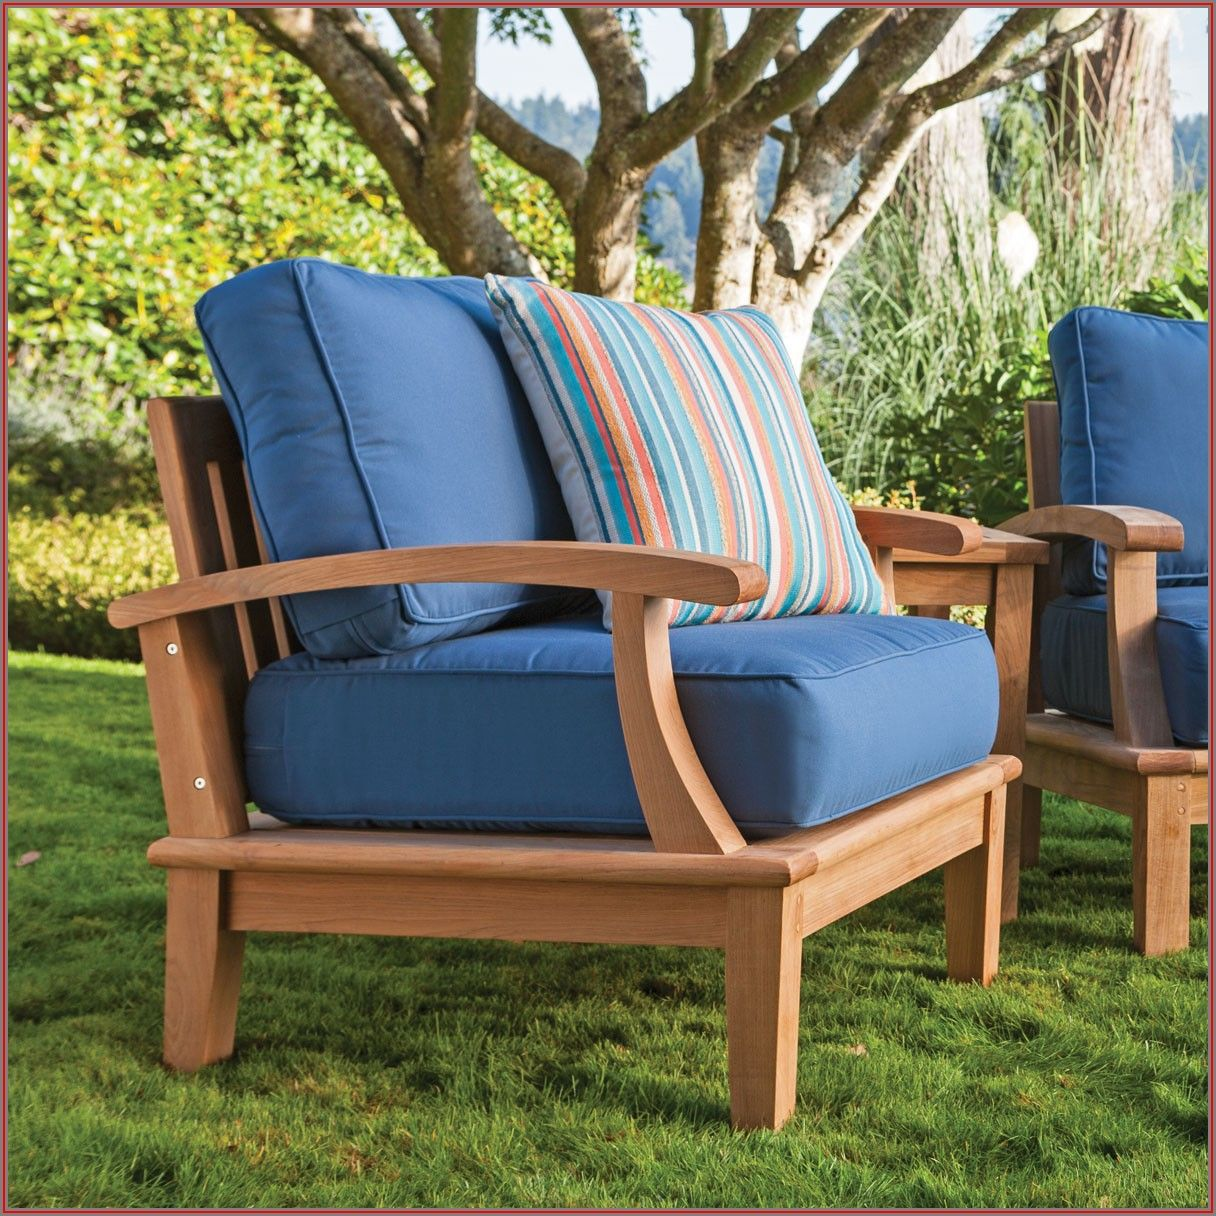 Sunbrella Patio Furniture Cushions